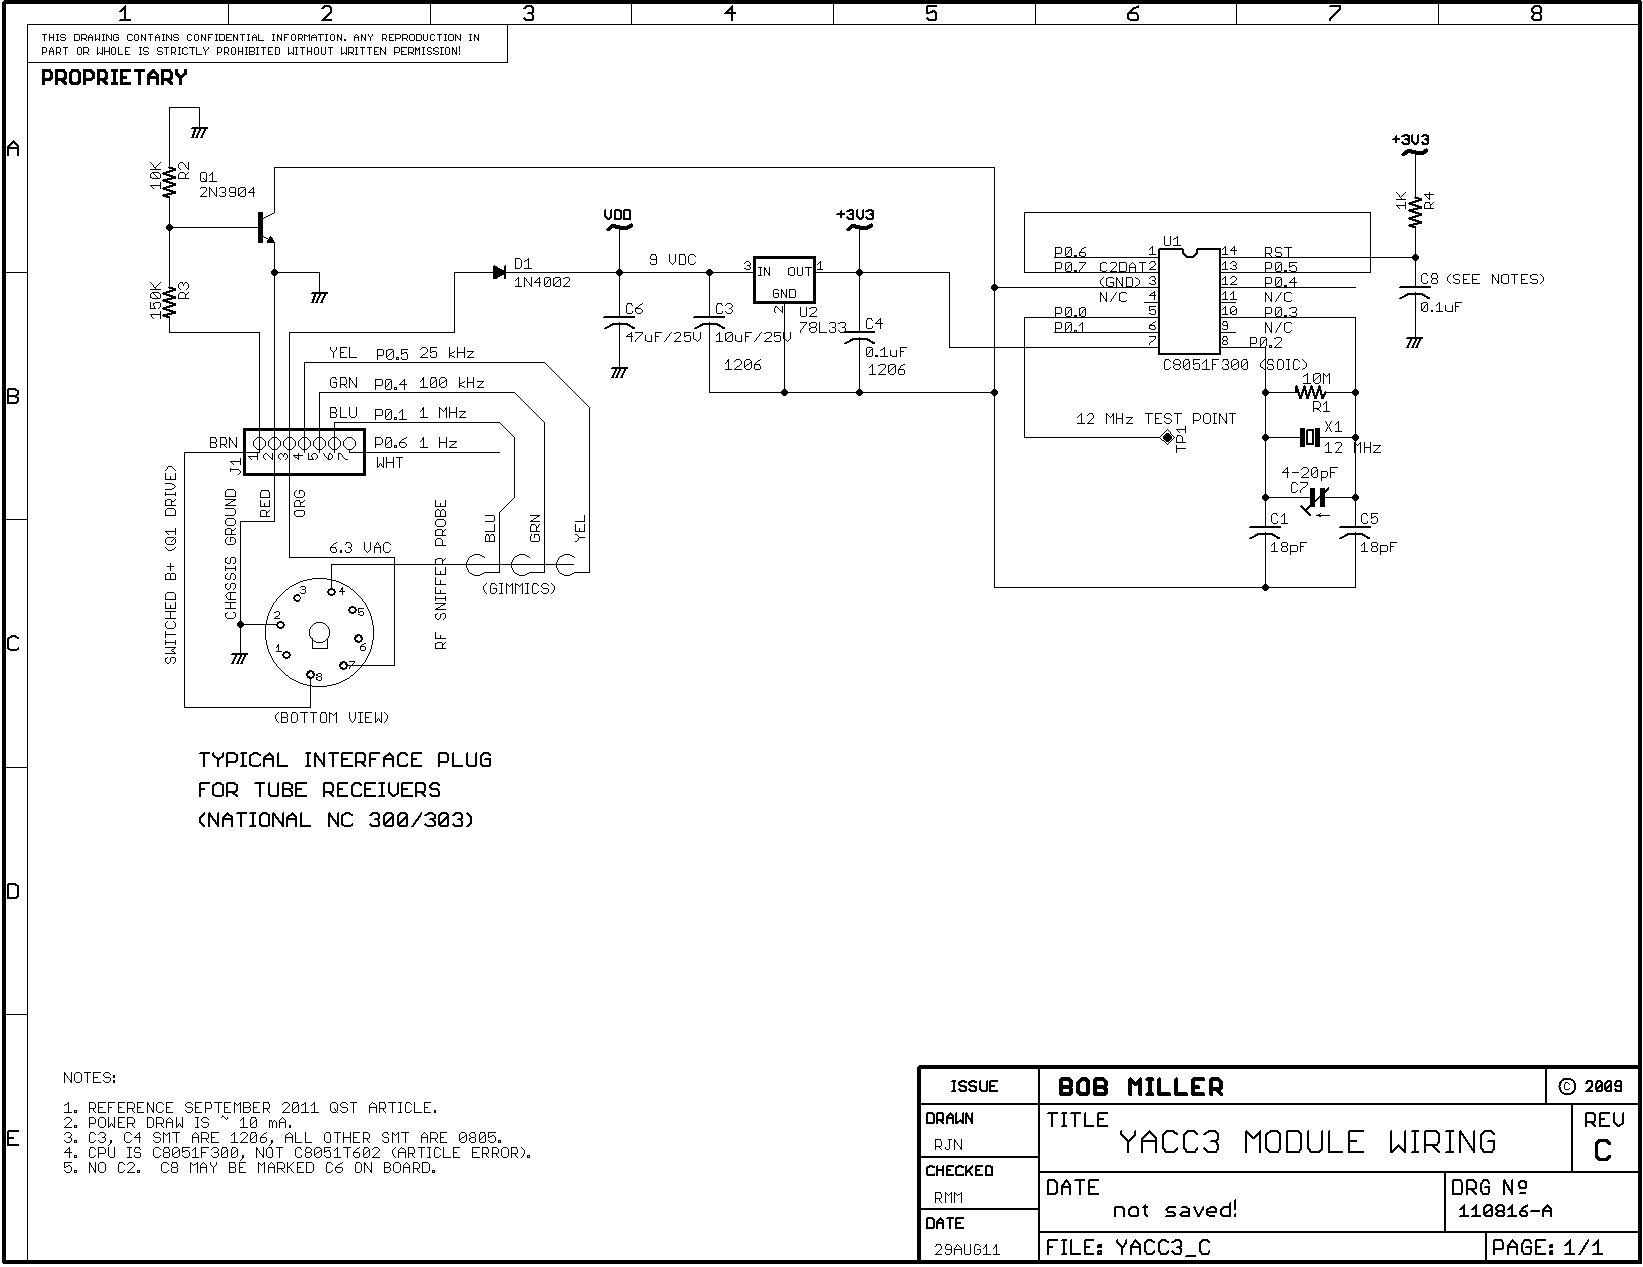 Yacc Module Documentation Interface Wiring Diagram As Shown In The Yacc3 Schematic